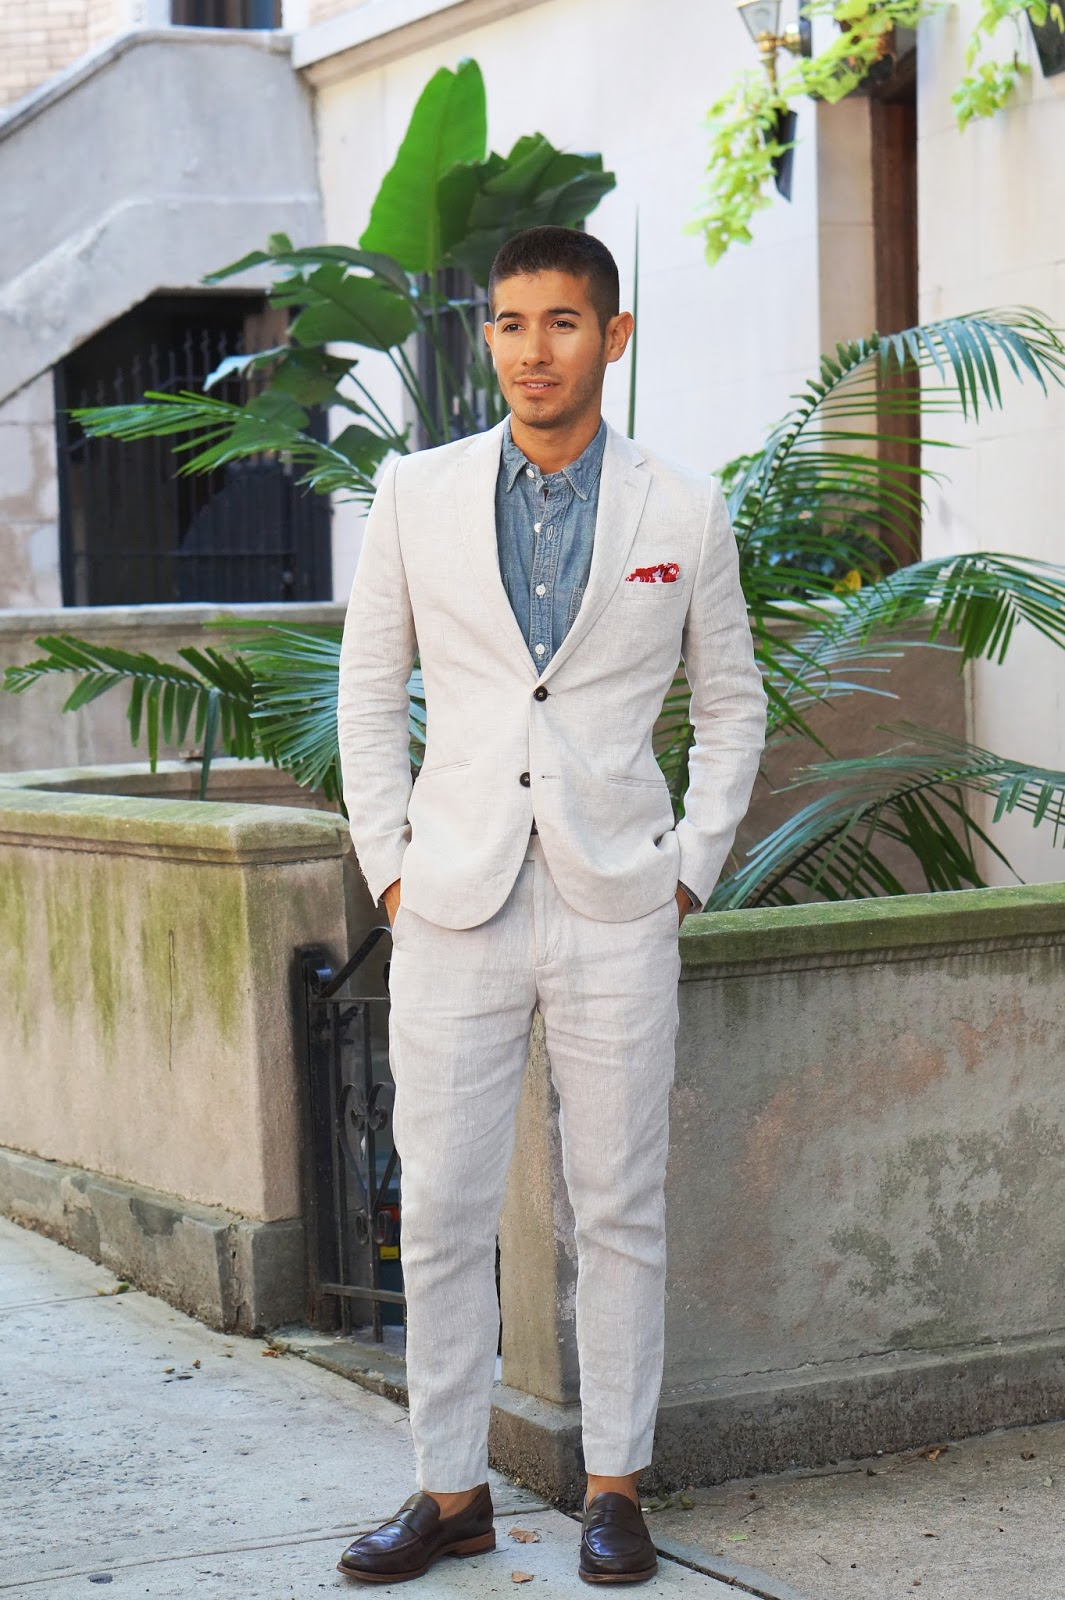 Suit Your Style - TREND STYLED • Style, Grooming, Design, and ...